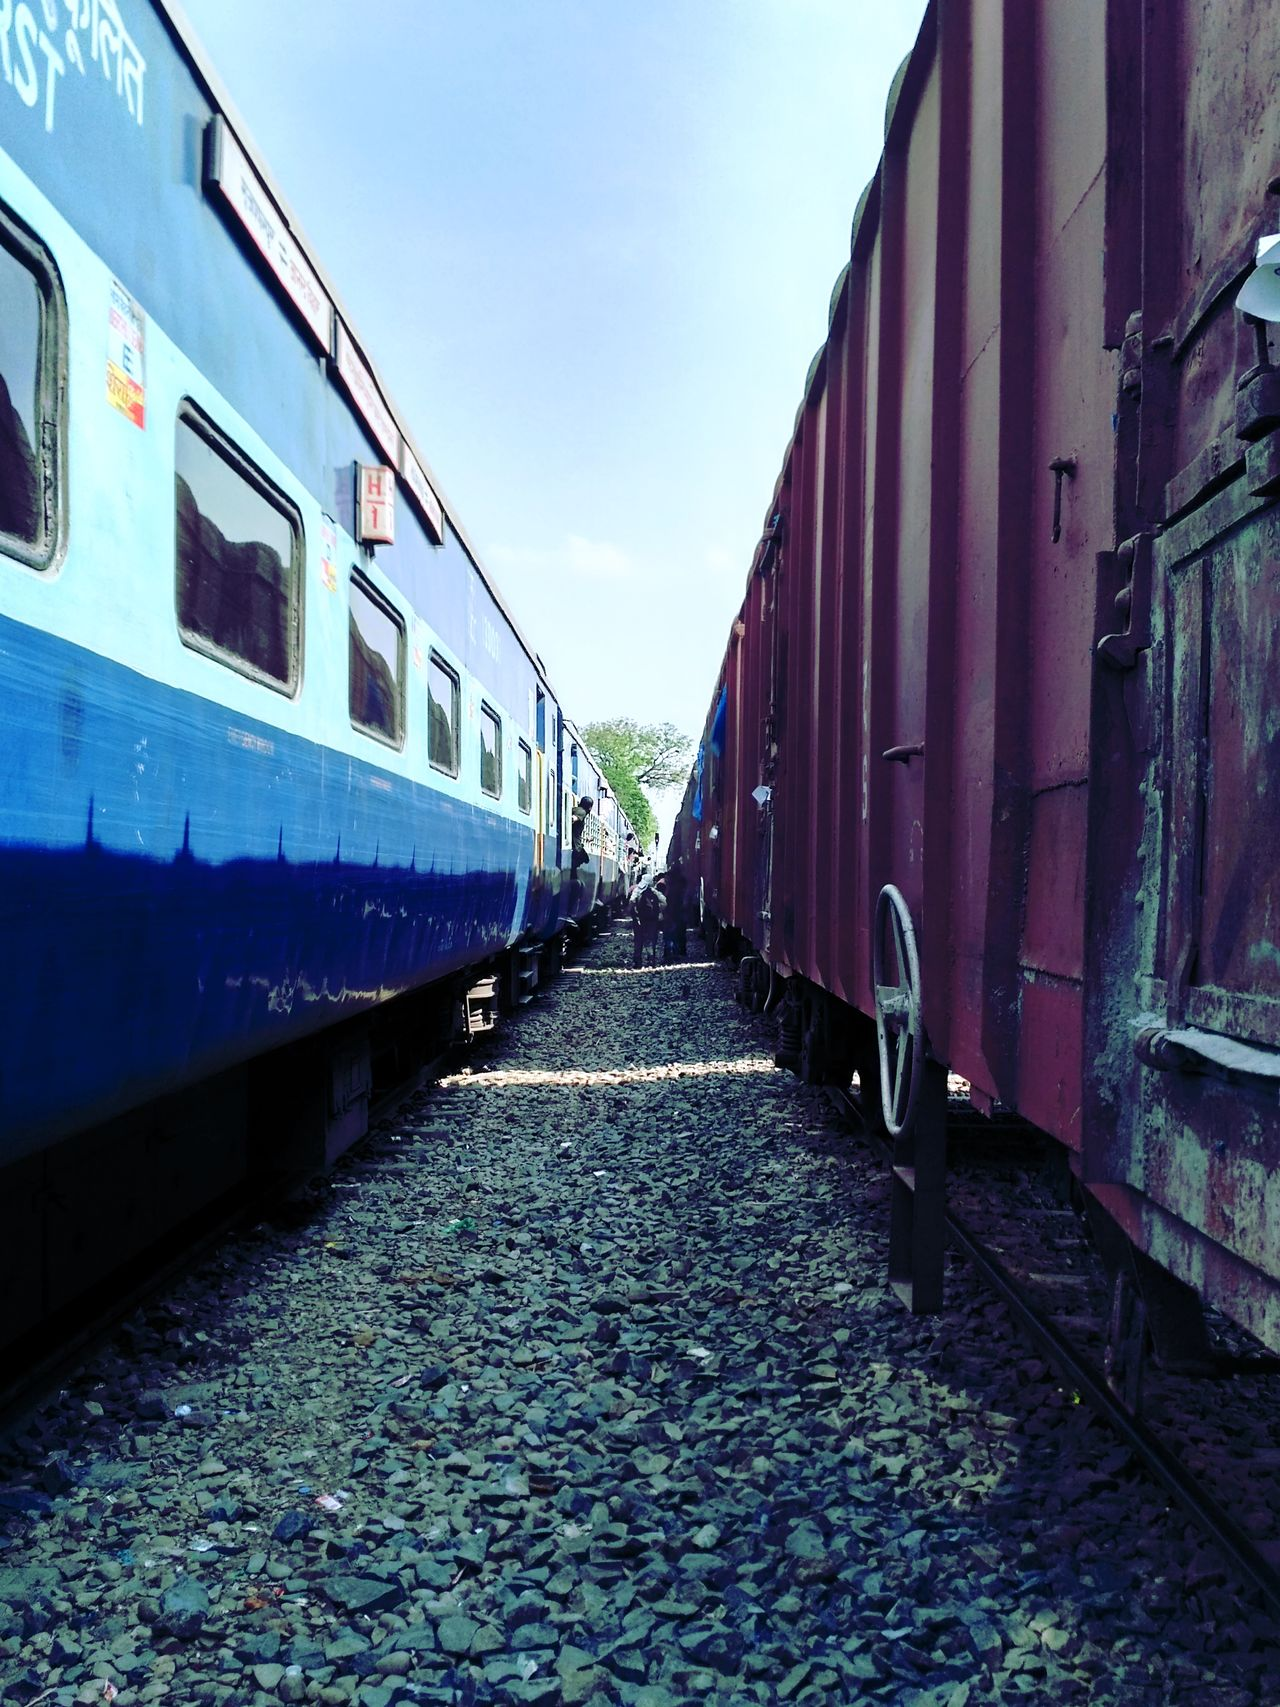 Train - Vehicle Rail Transportation Railroad Track Mode Of Transport Cargo Container Outdoors Freight Transportation Transportation Sky No People Stationary Day